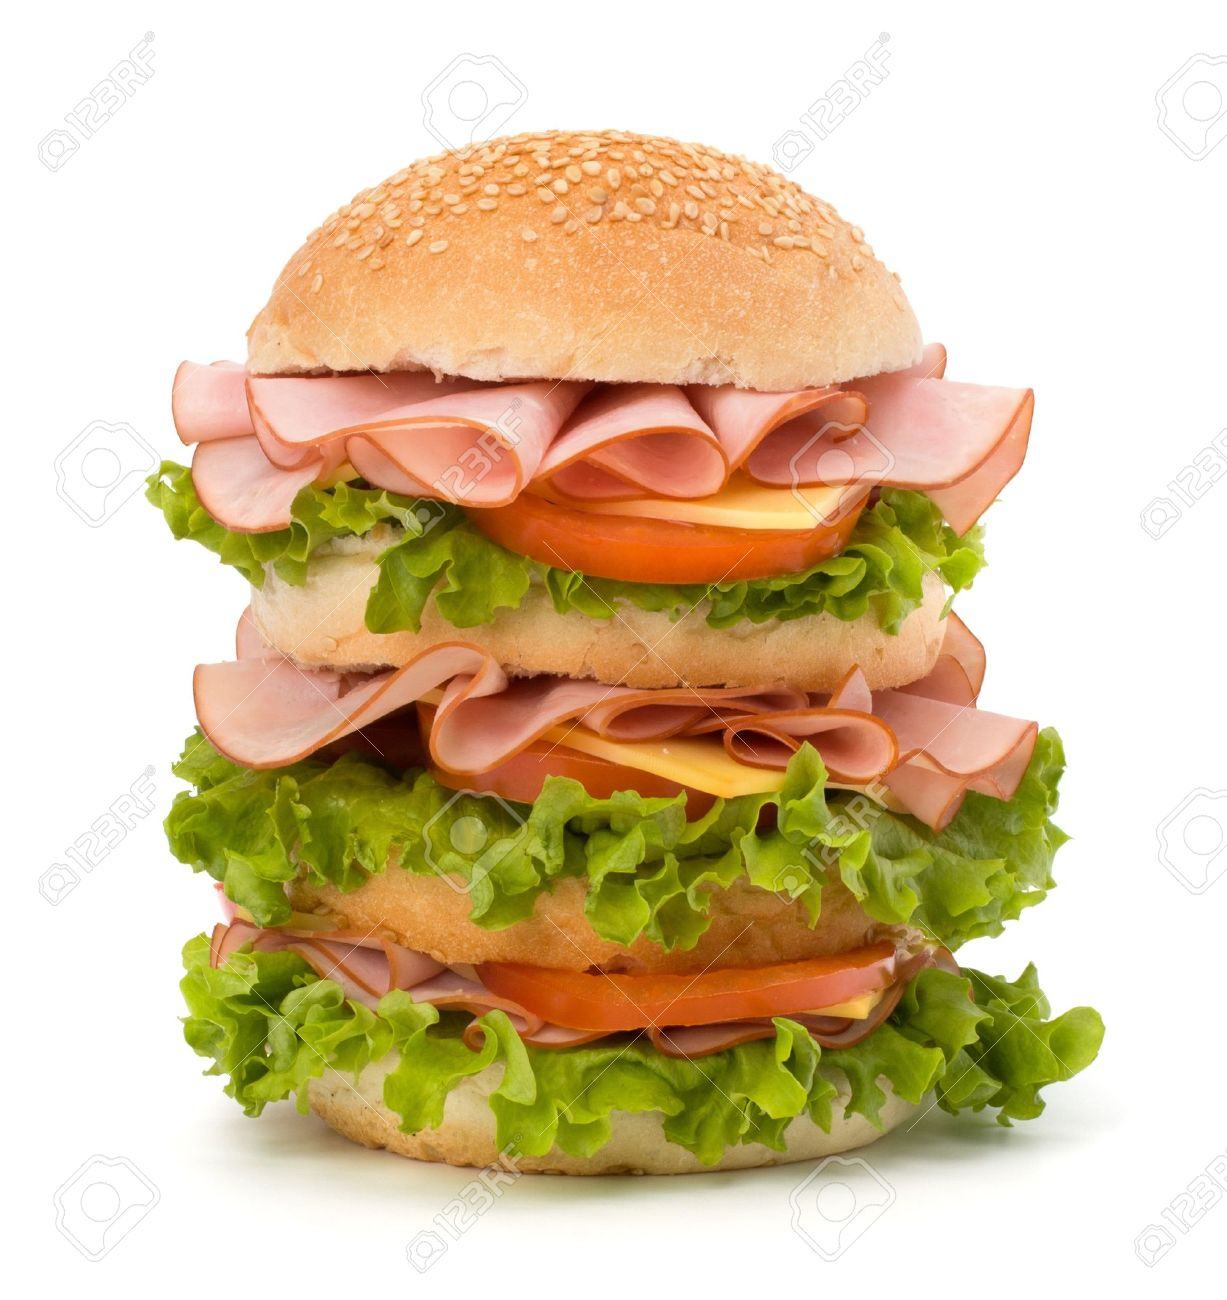 Big appetizing fast food sandwich with lettuce, tomato, smoked ham and cheese isolated on white background. Junk food hamburger. Stock Photo - 9815865